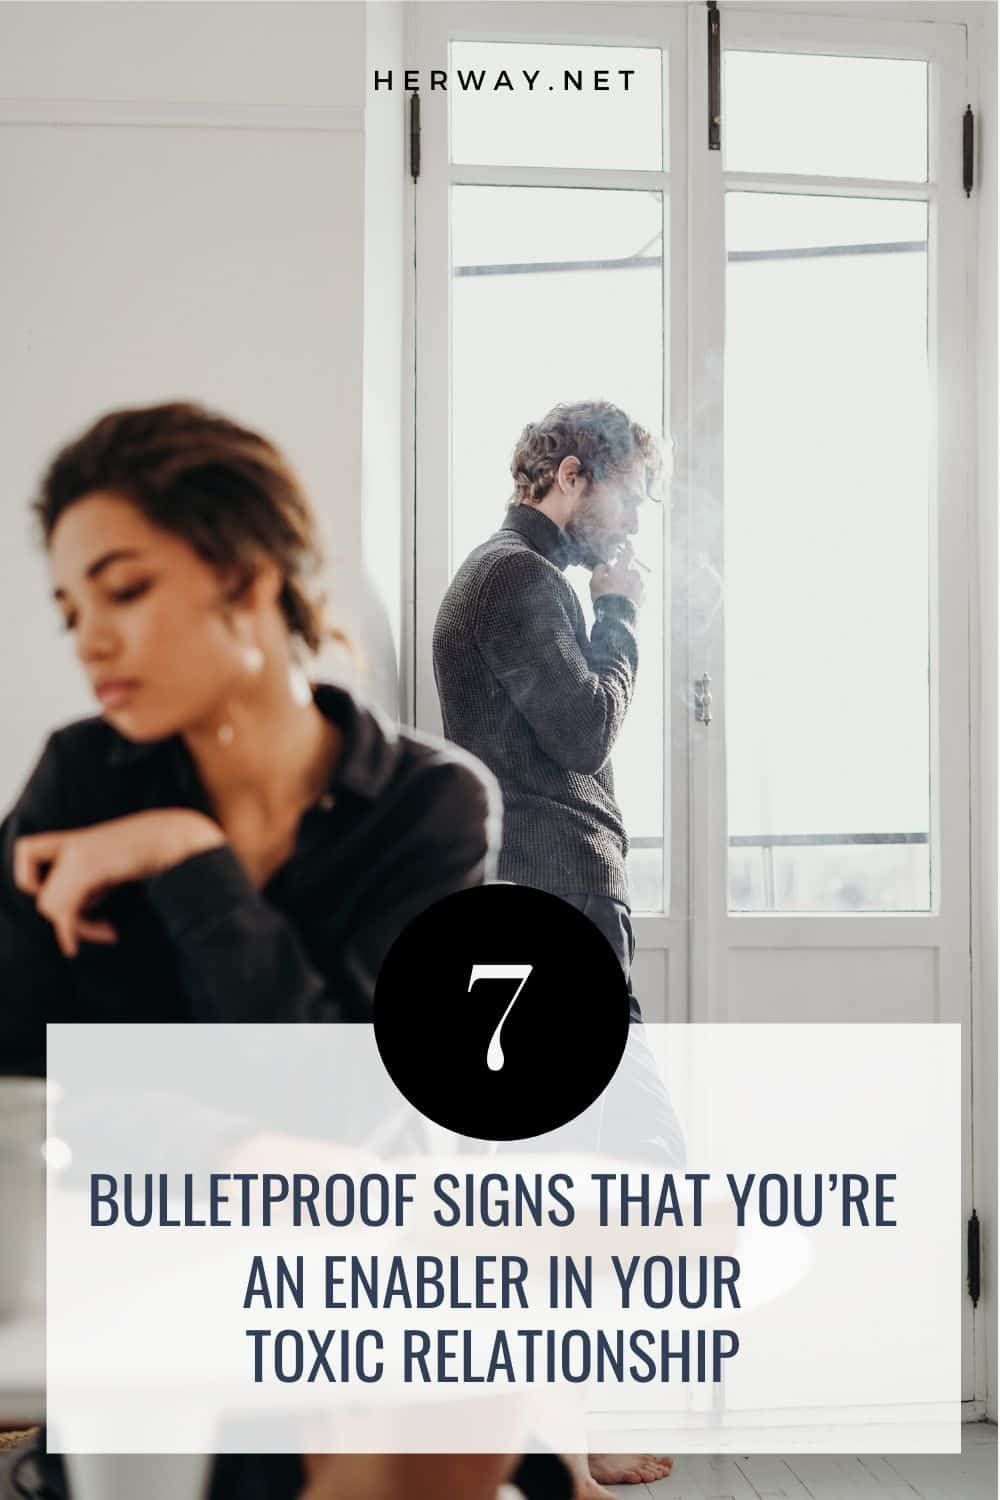 7 Bulletproof Signs That You're An Enabler In Your Toxic Relationship